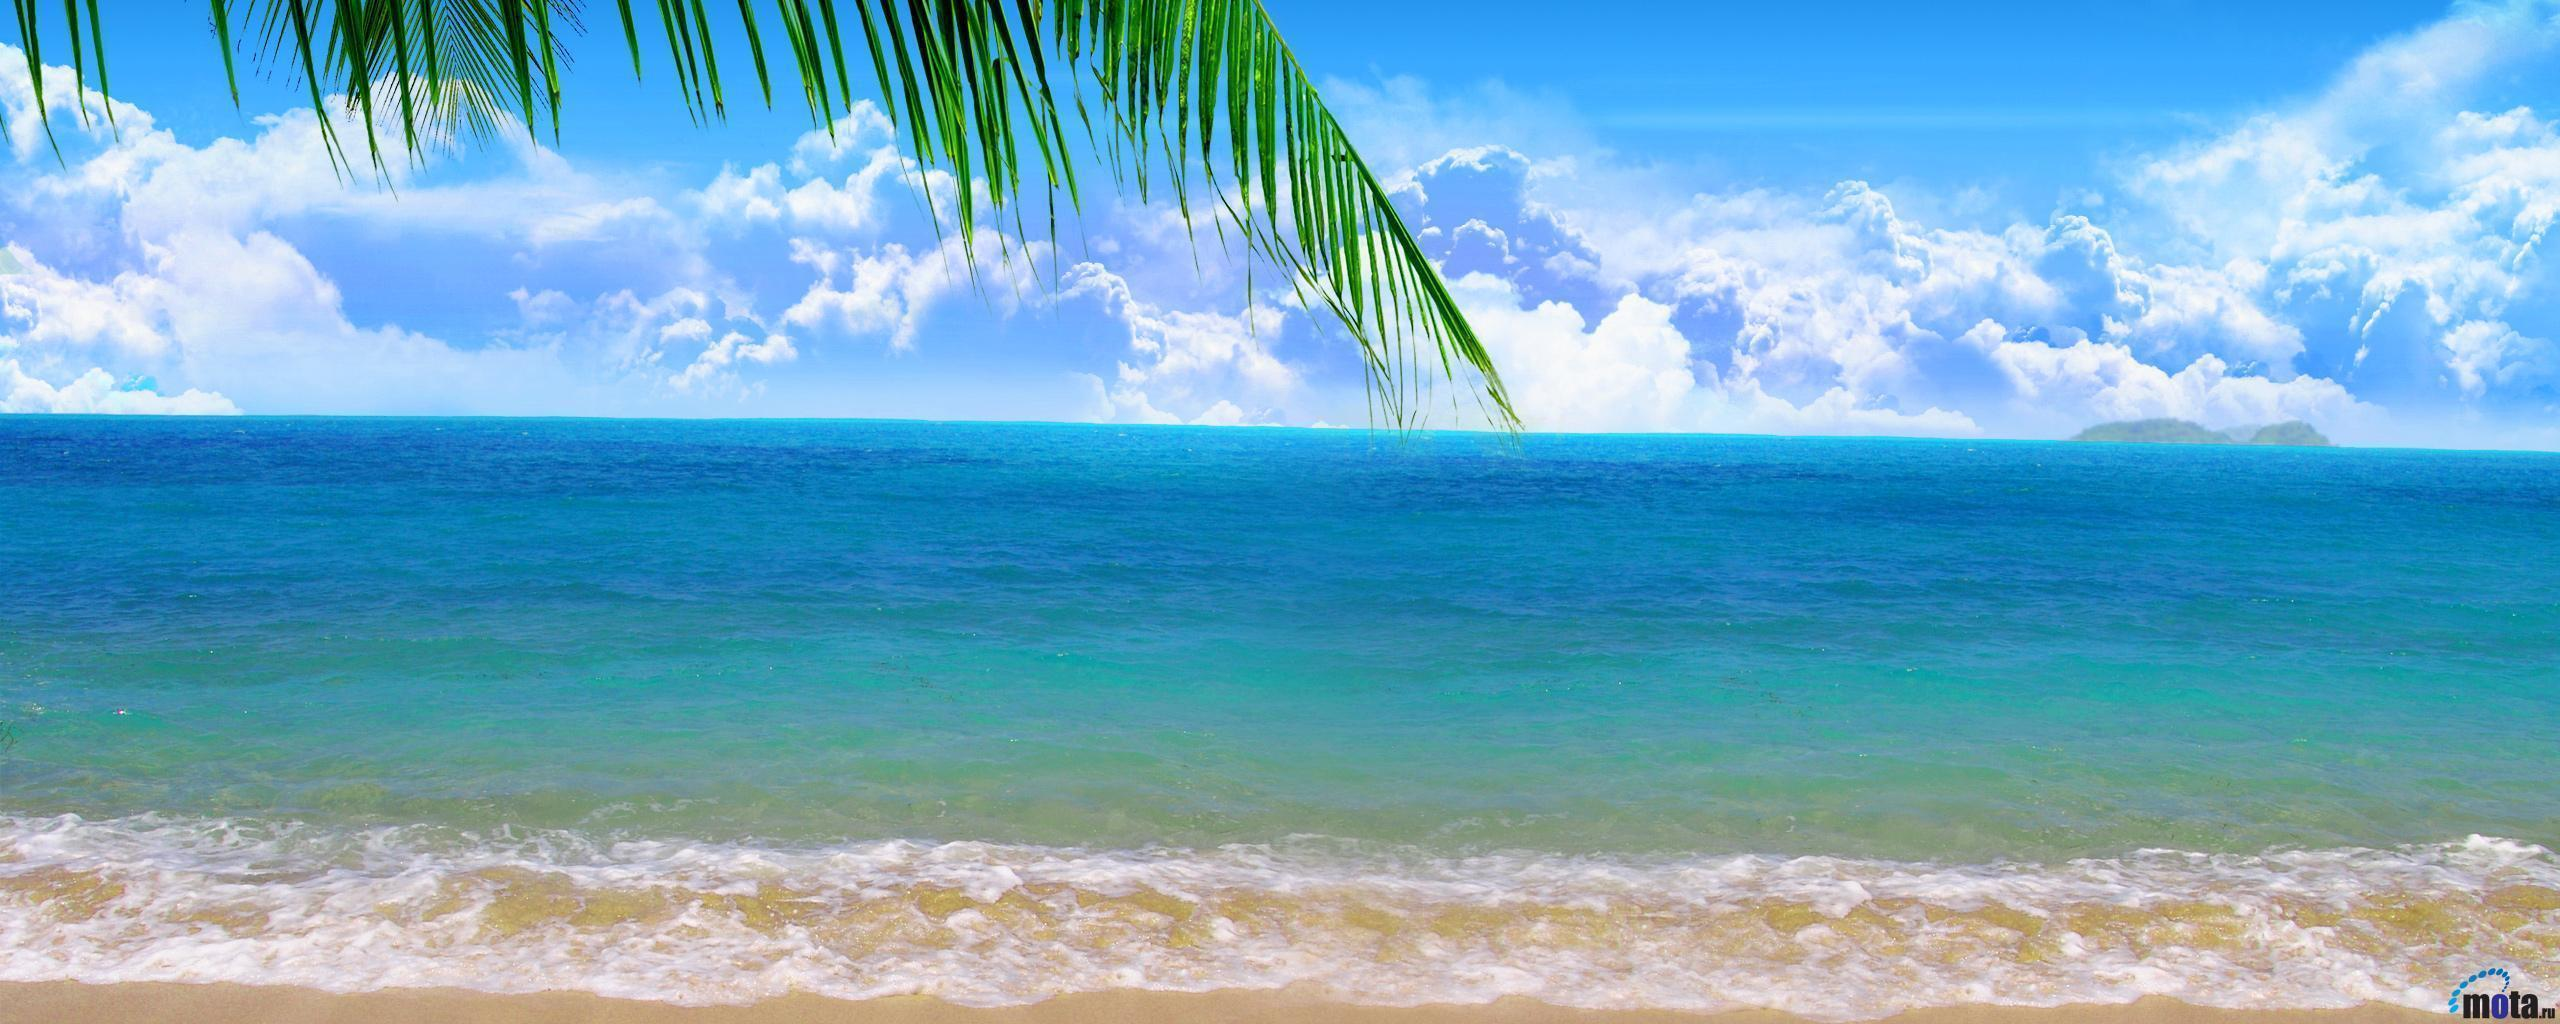 Beach Paradise Wallpapers - Wallpaper Cave